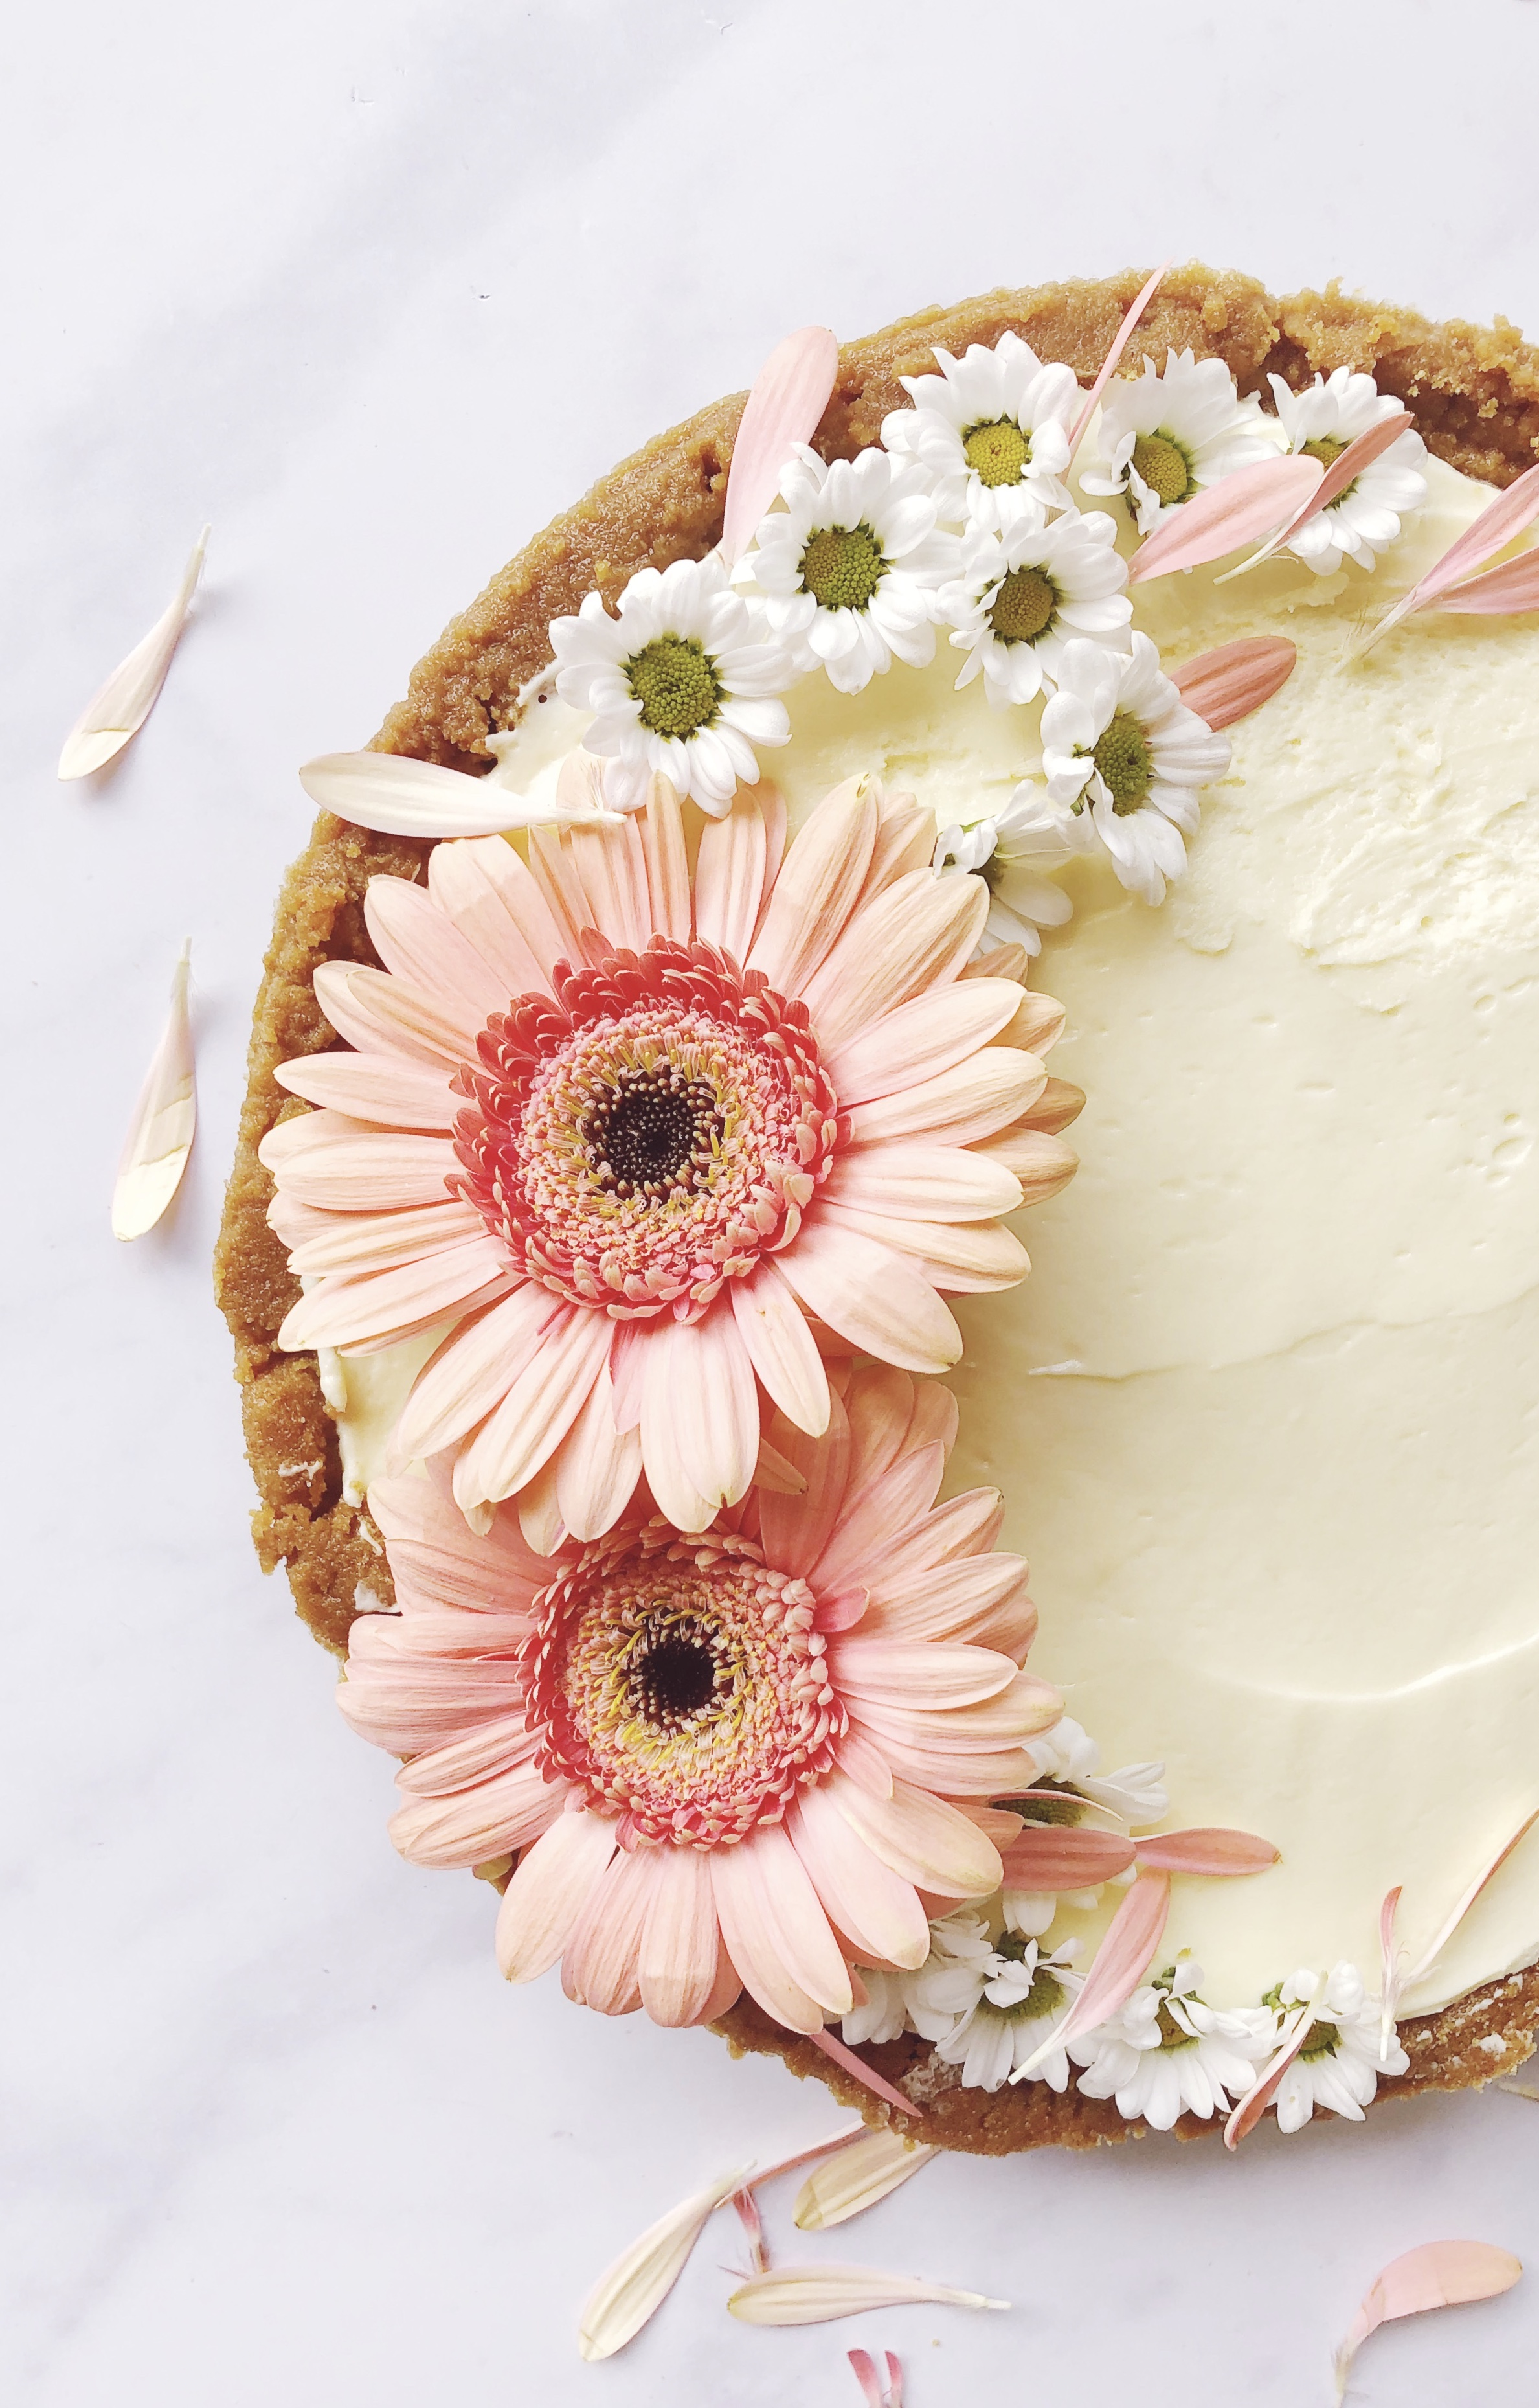 white chocolate and ginger torte